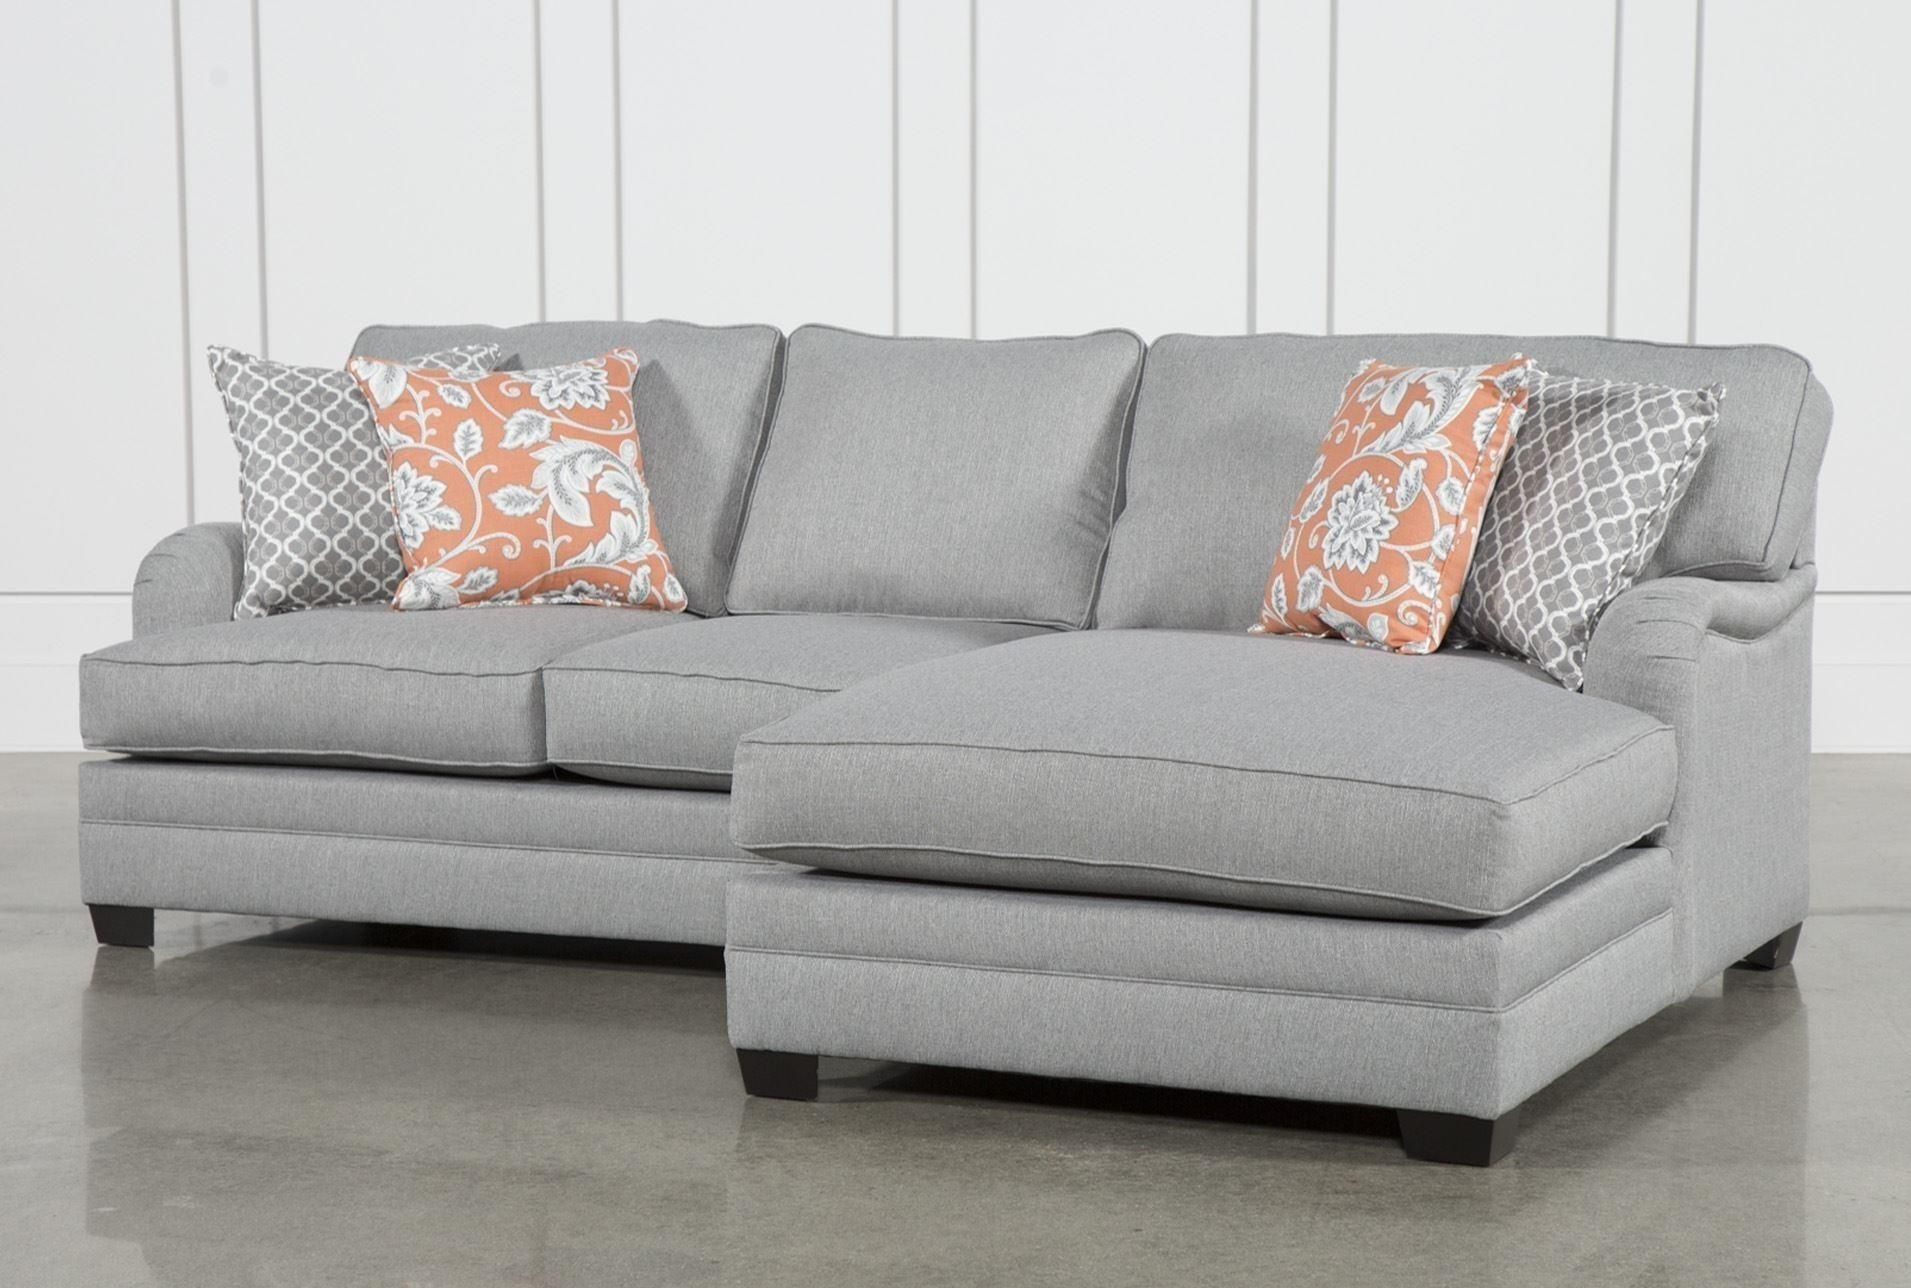 Marissa 2 Piece Sectional W/raf Chaise | Oakdell House | Pinterest intended for Mcculla Sofa Sectionals With Reversible Chaise (Image 18 of 30)